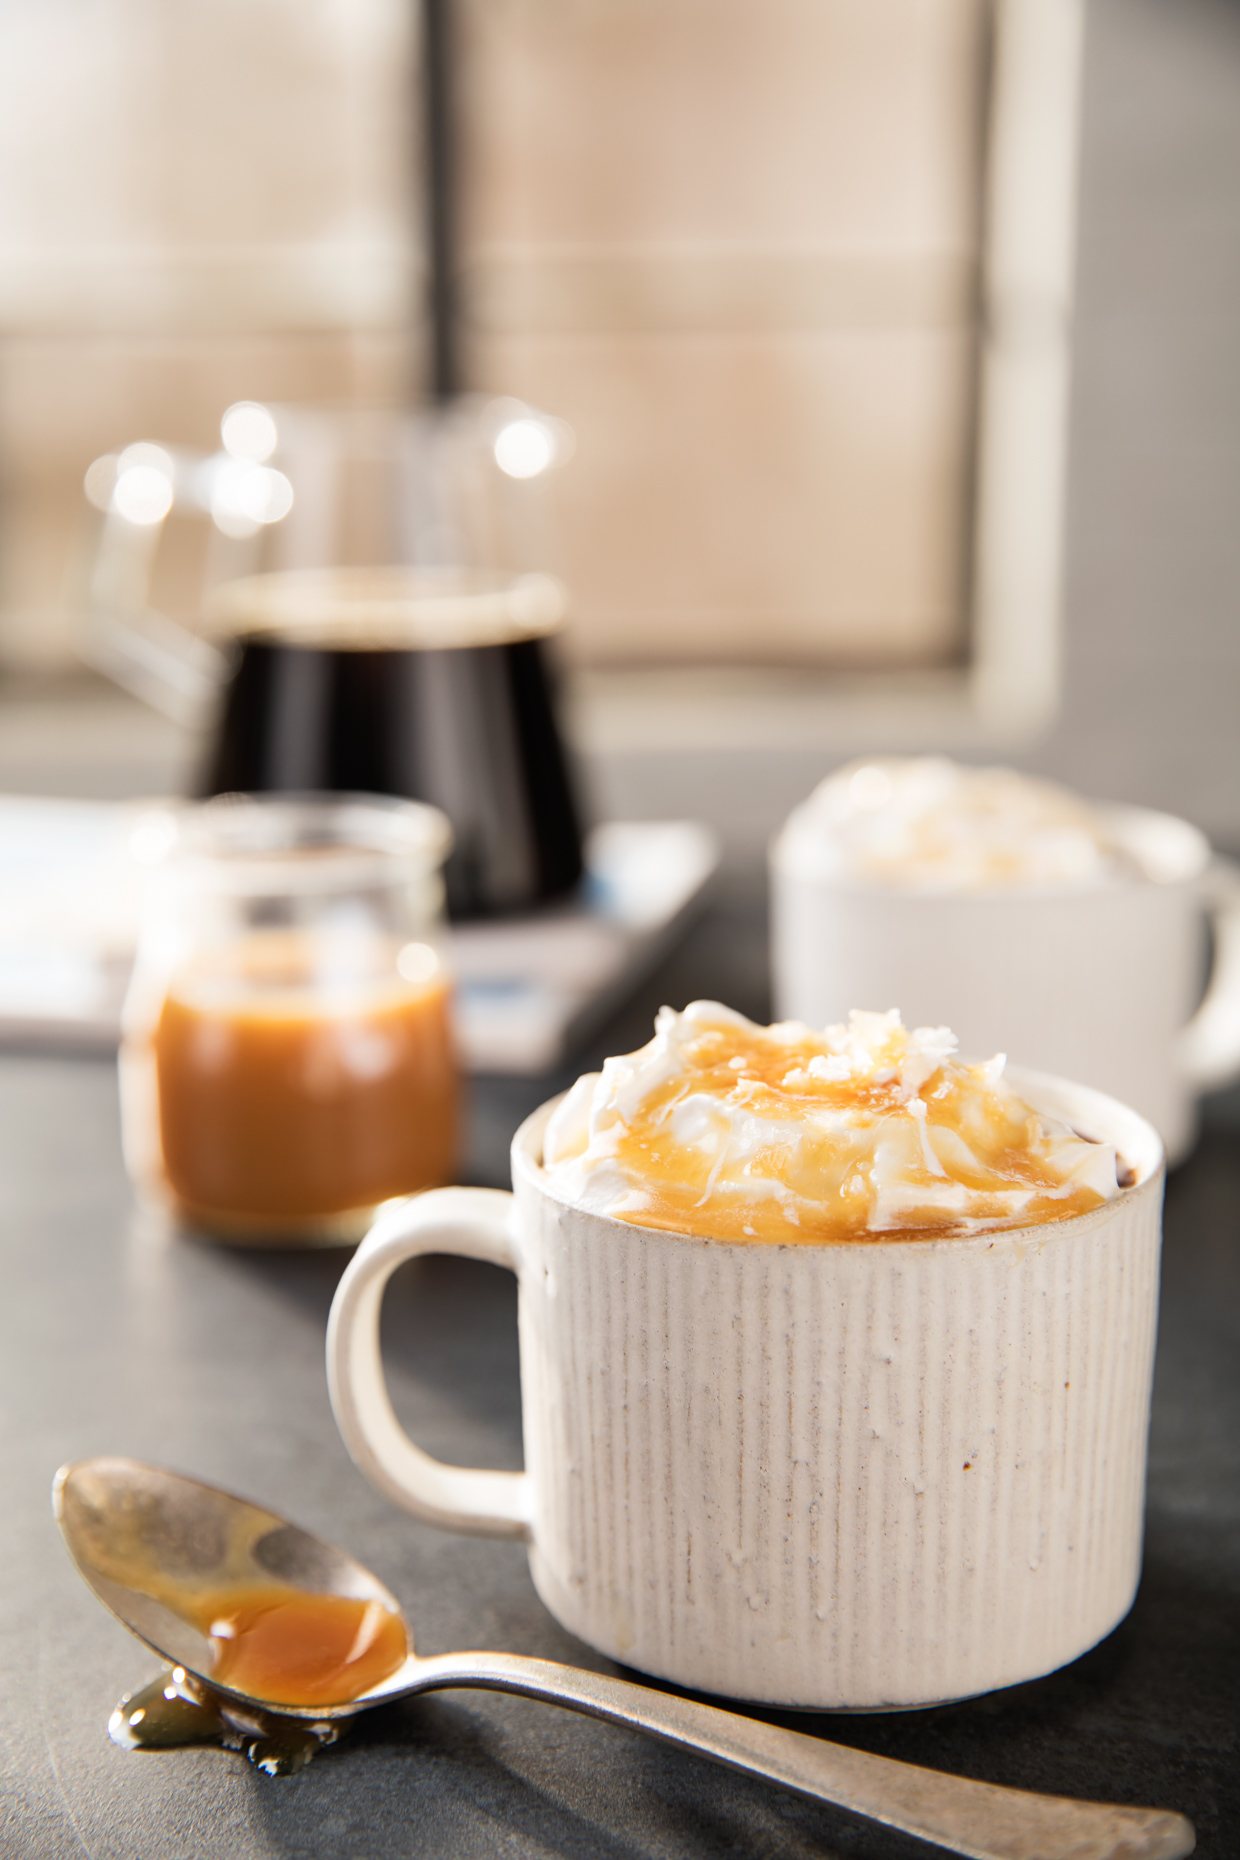 FluidFrame_food_photography_culinary_lifestyleTAS_S1_Salted_Carmel_0177_edit